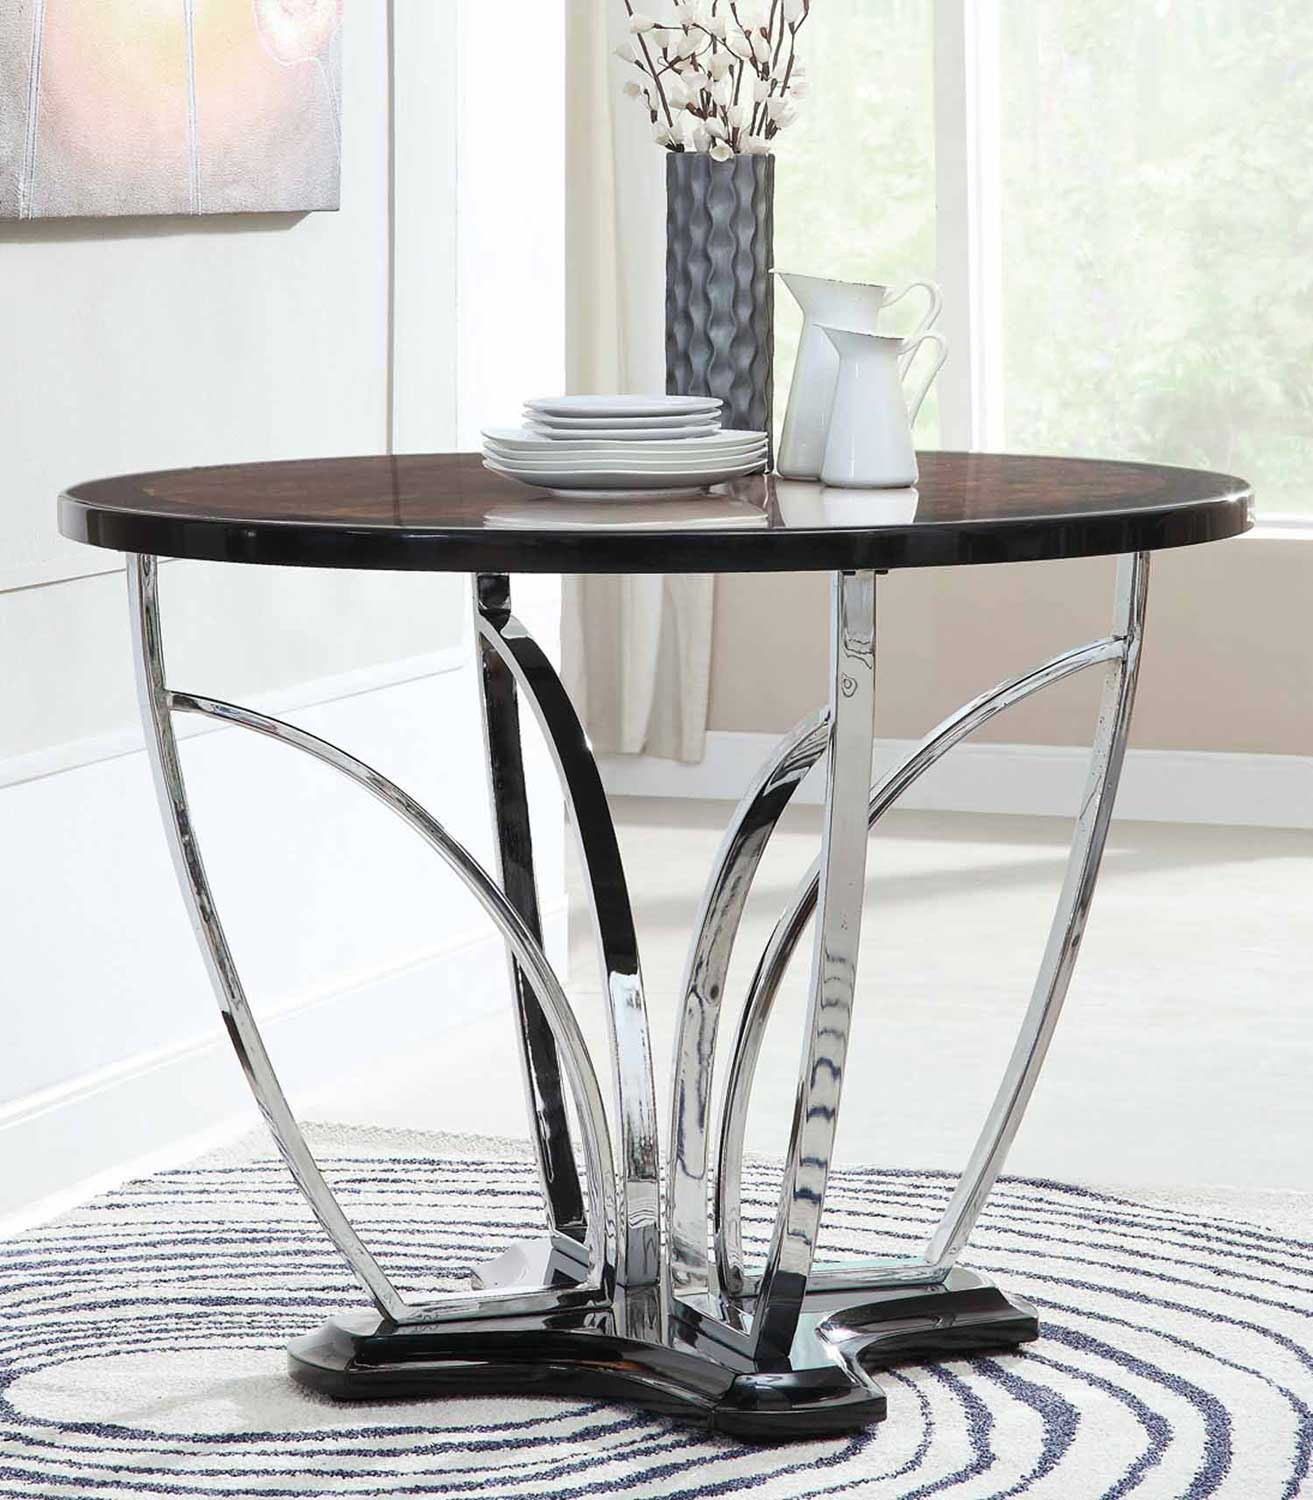 Coaster Counter Height Table - Silver 120865